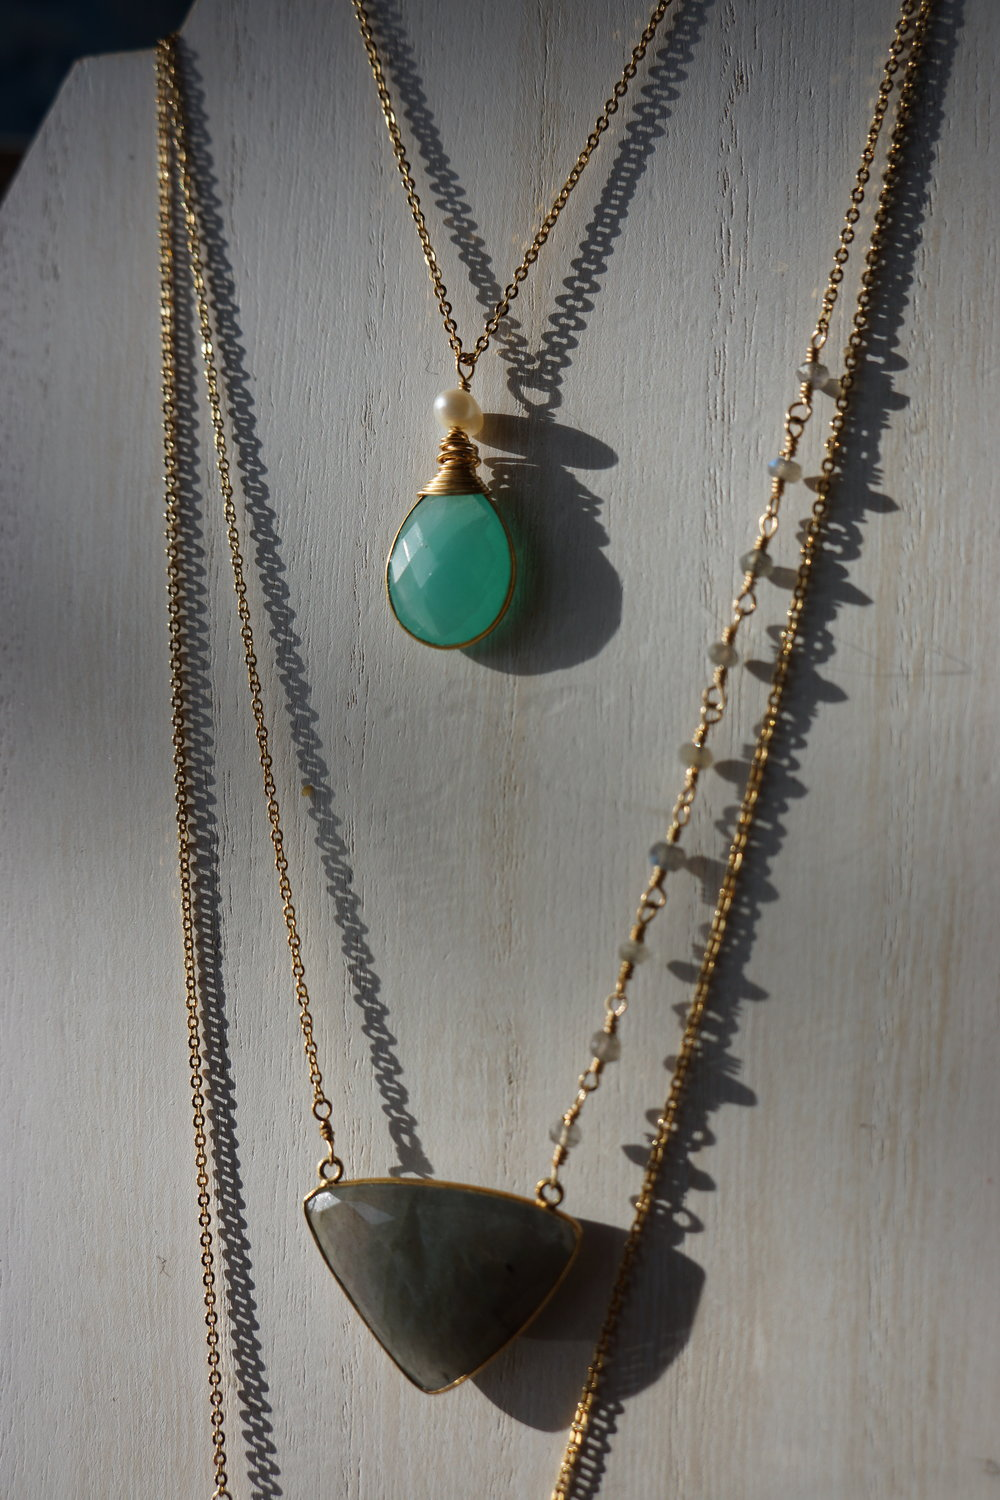 METAL AND PRECIOUS GEMS BY ALICIA MCGURK STARTING AT $40.00  many styles available